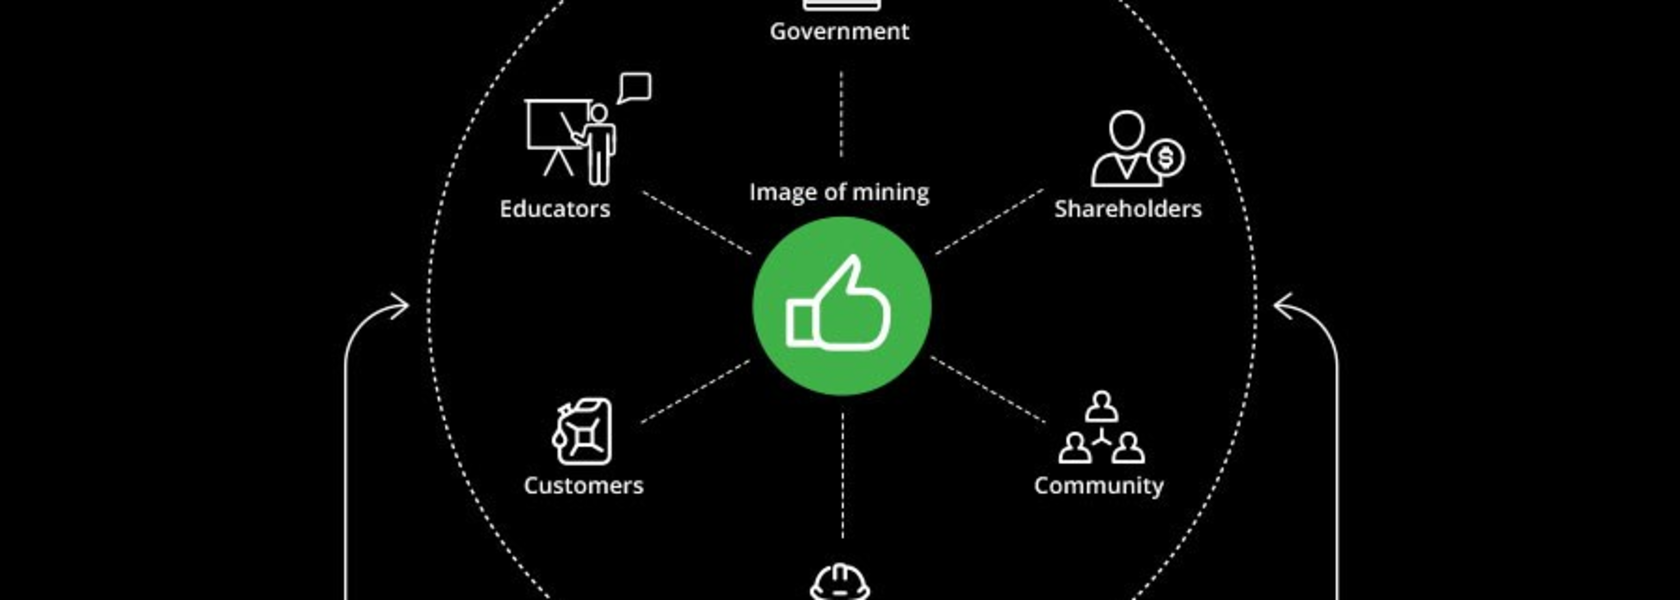 Deloitte explores trends to boost mining's image